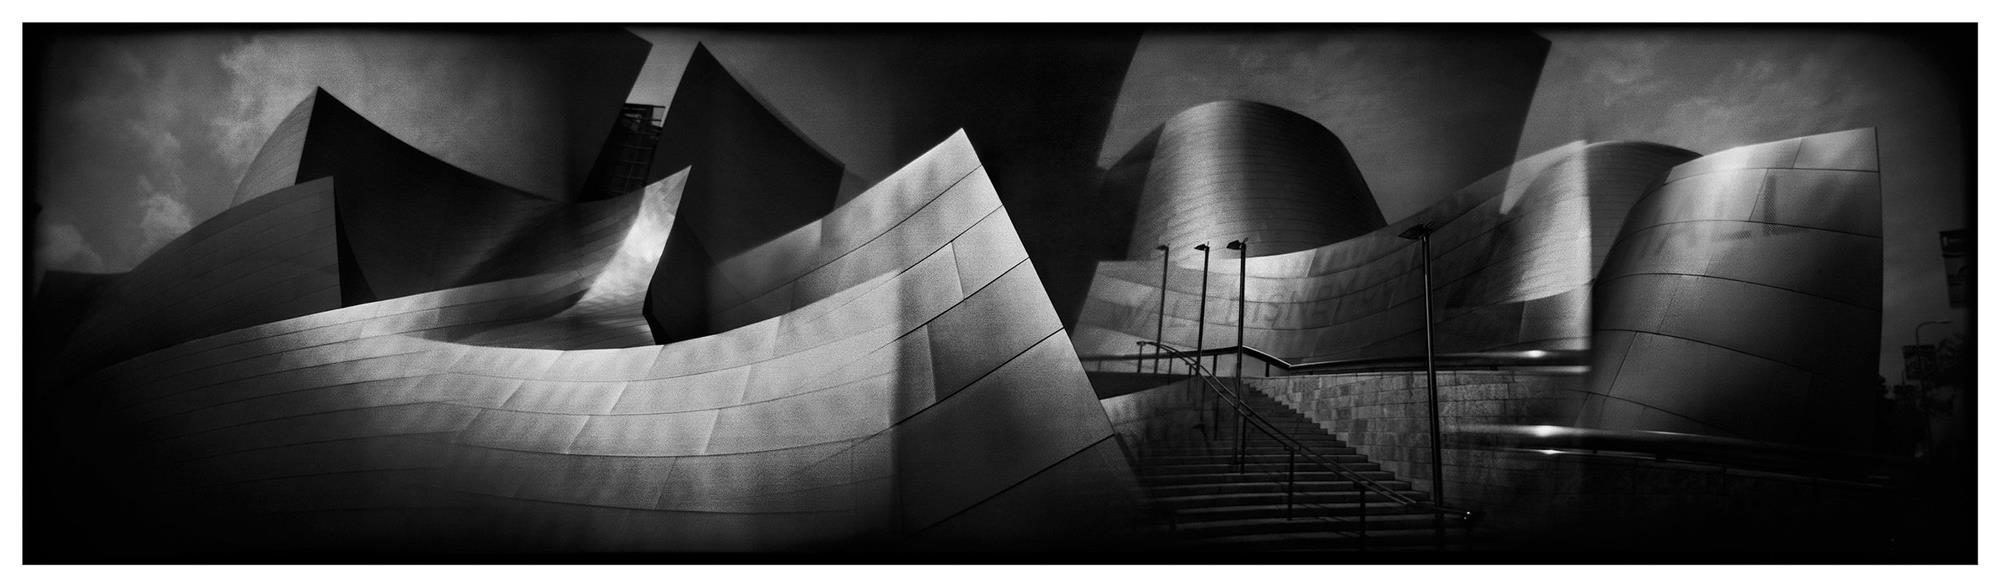 Disney Concert Hall, Los Angeles, 2008